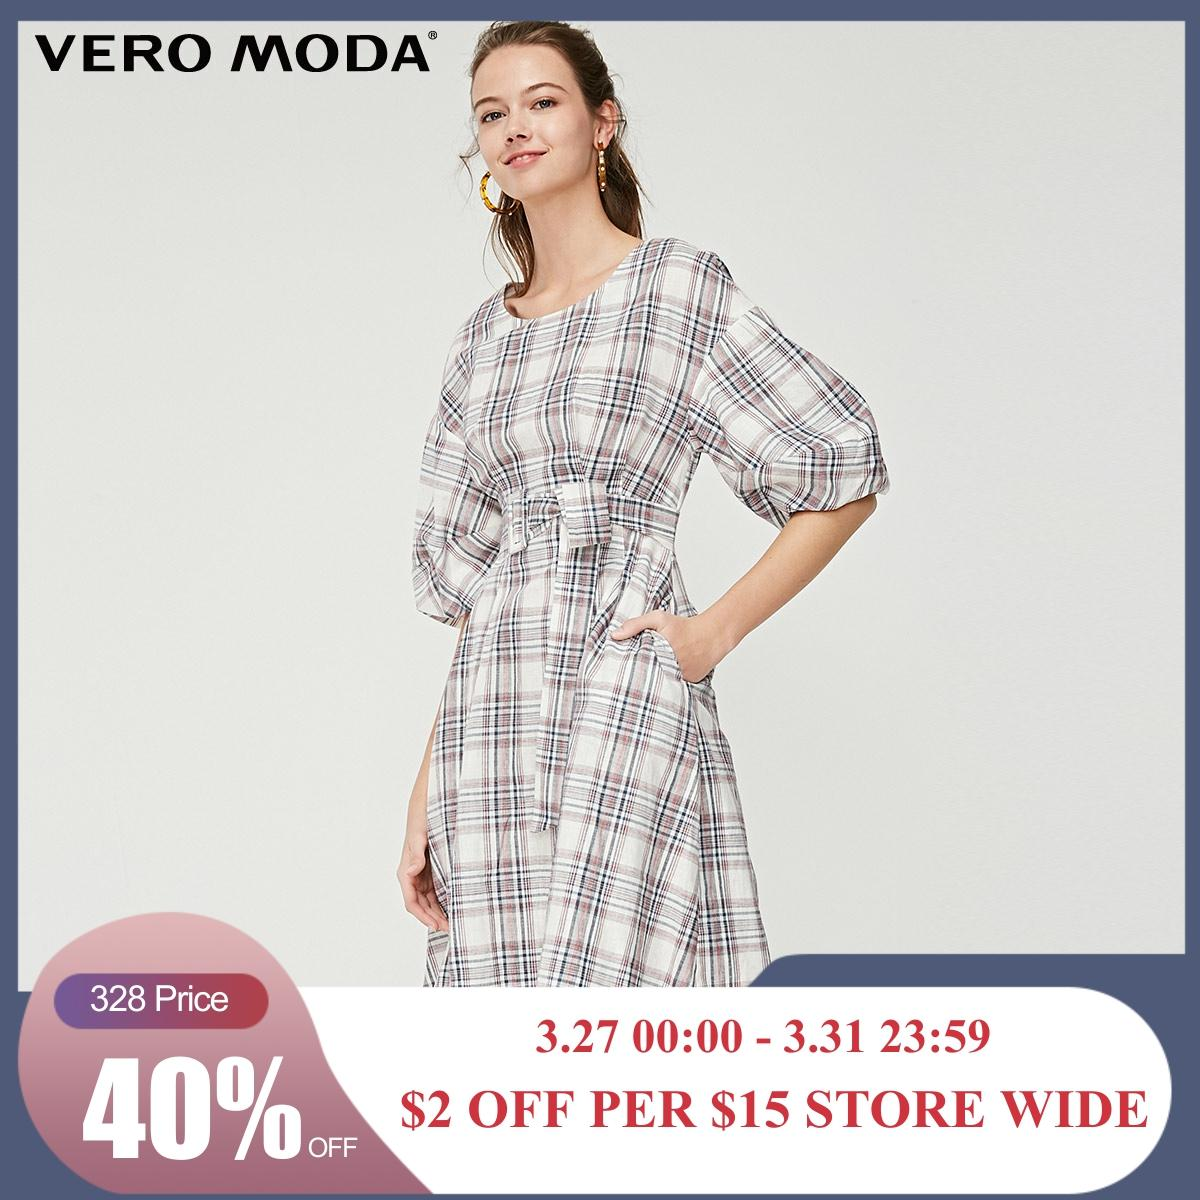 Vero Moda Women's Linen Plaid Fabric Lace-up Elbow Sleeves Dress | 31916Z505